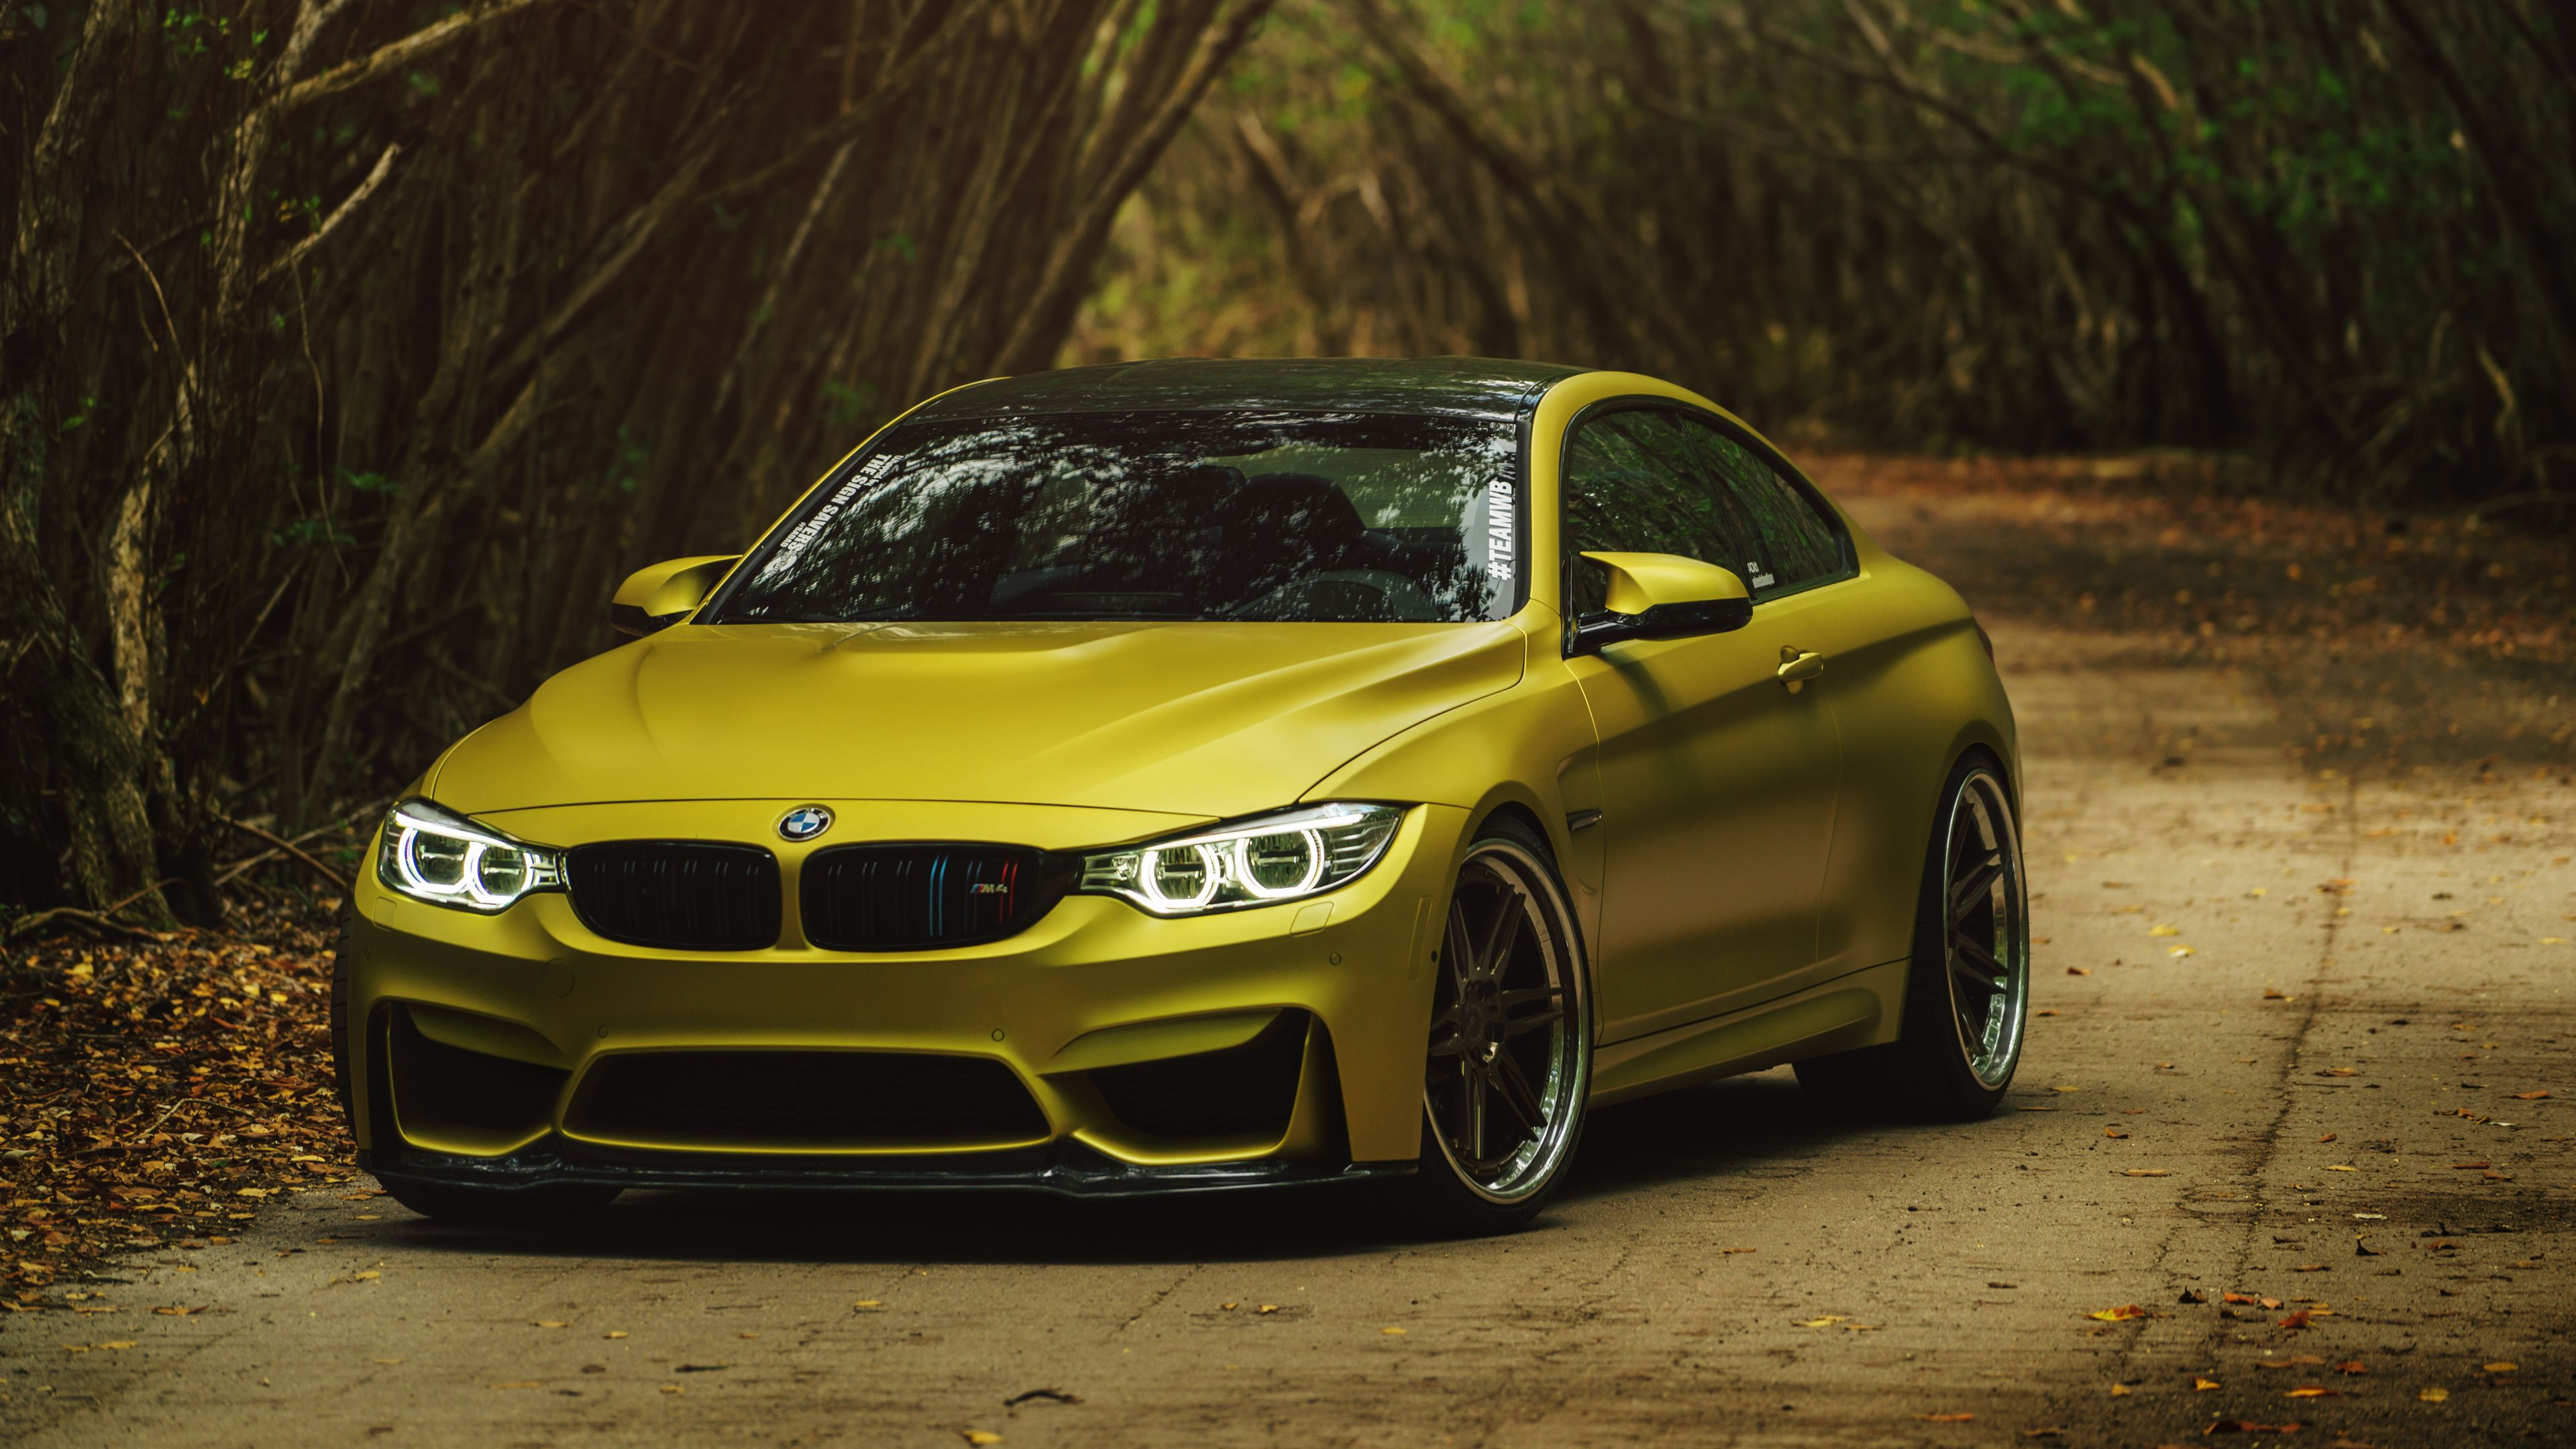 3840x2160 - BMW M4 Wallpapers 7